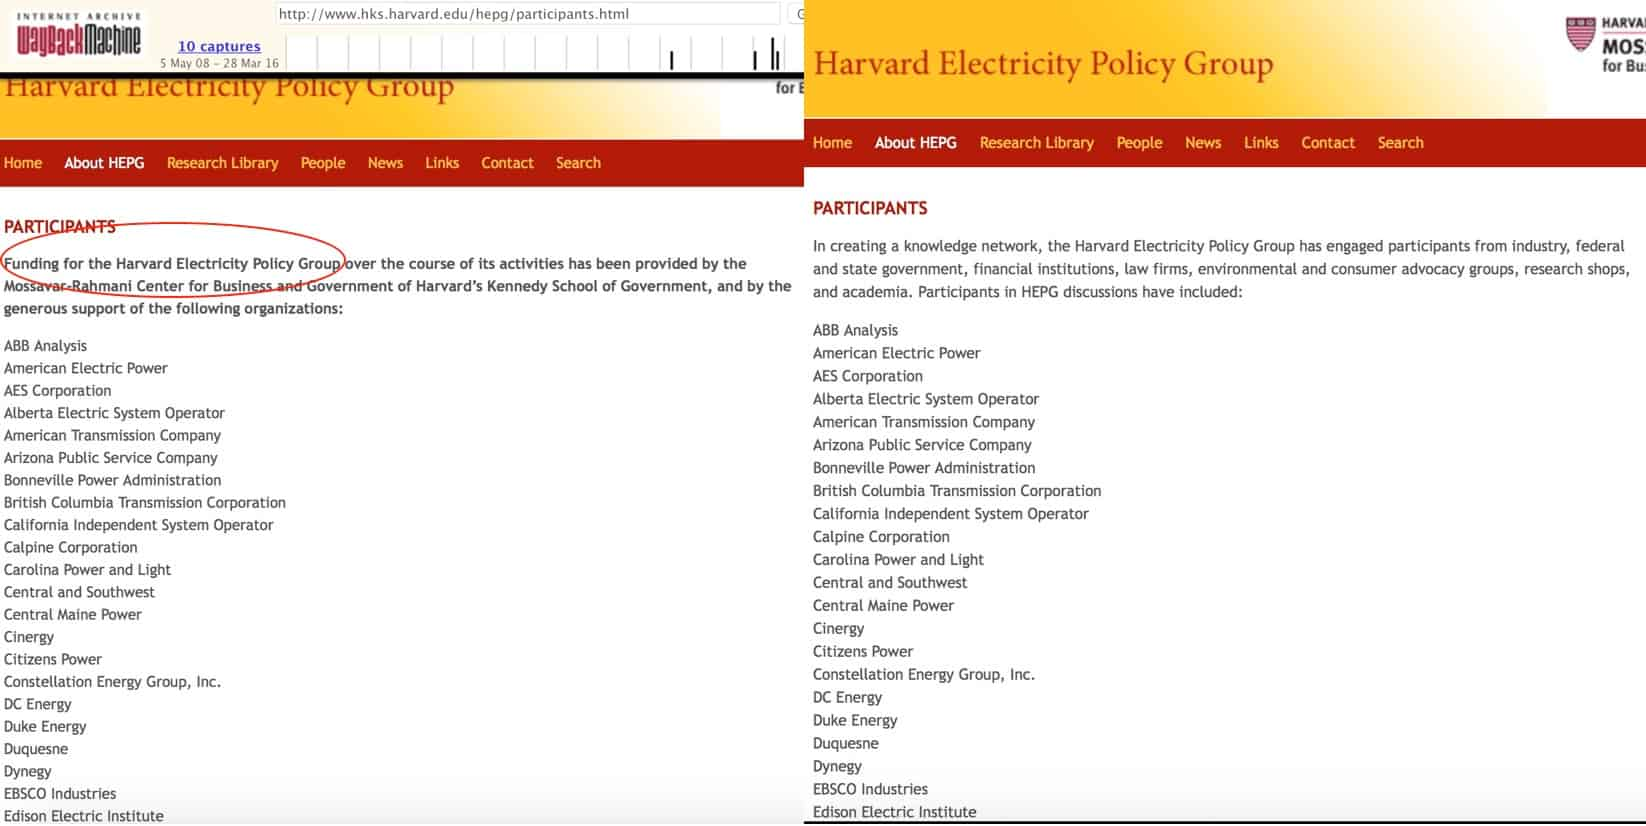 HEPG Deleted Funding From Utilities